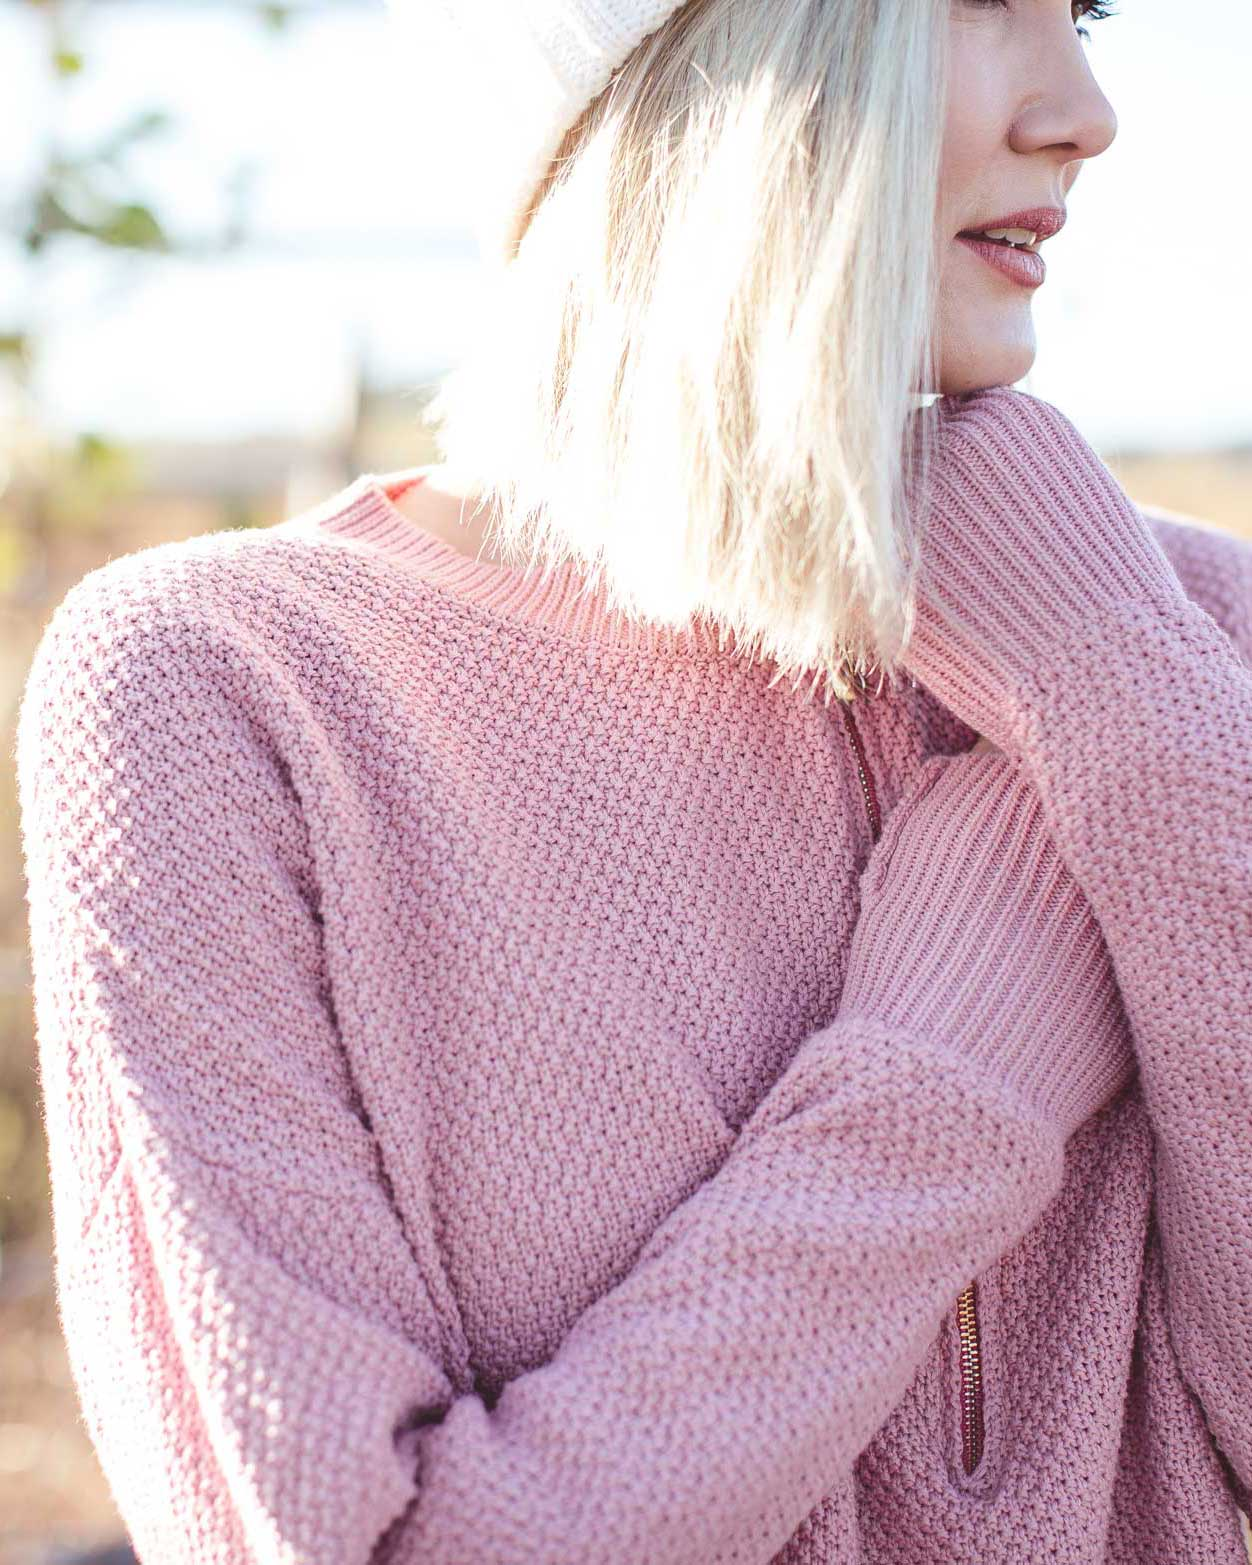 Stylish knit jumper for breastfeeding in winter! | MOOLK